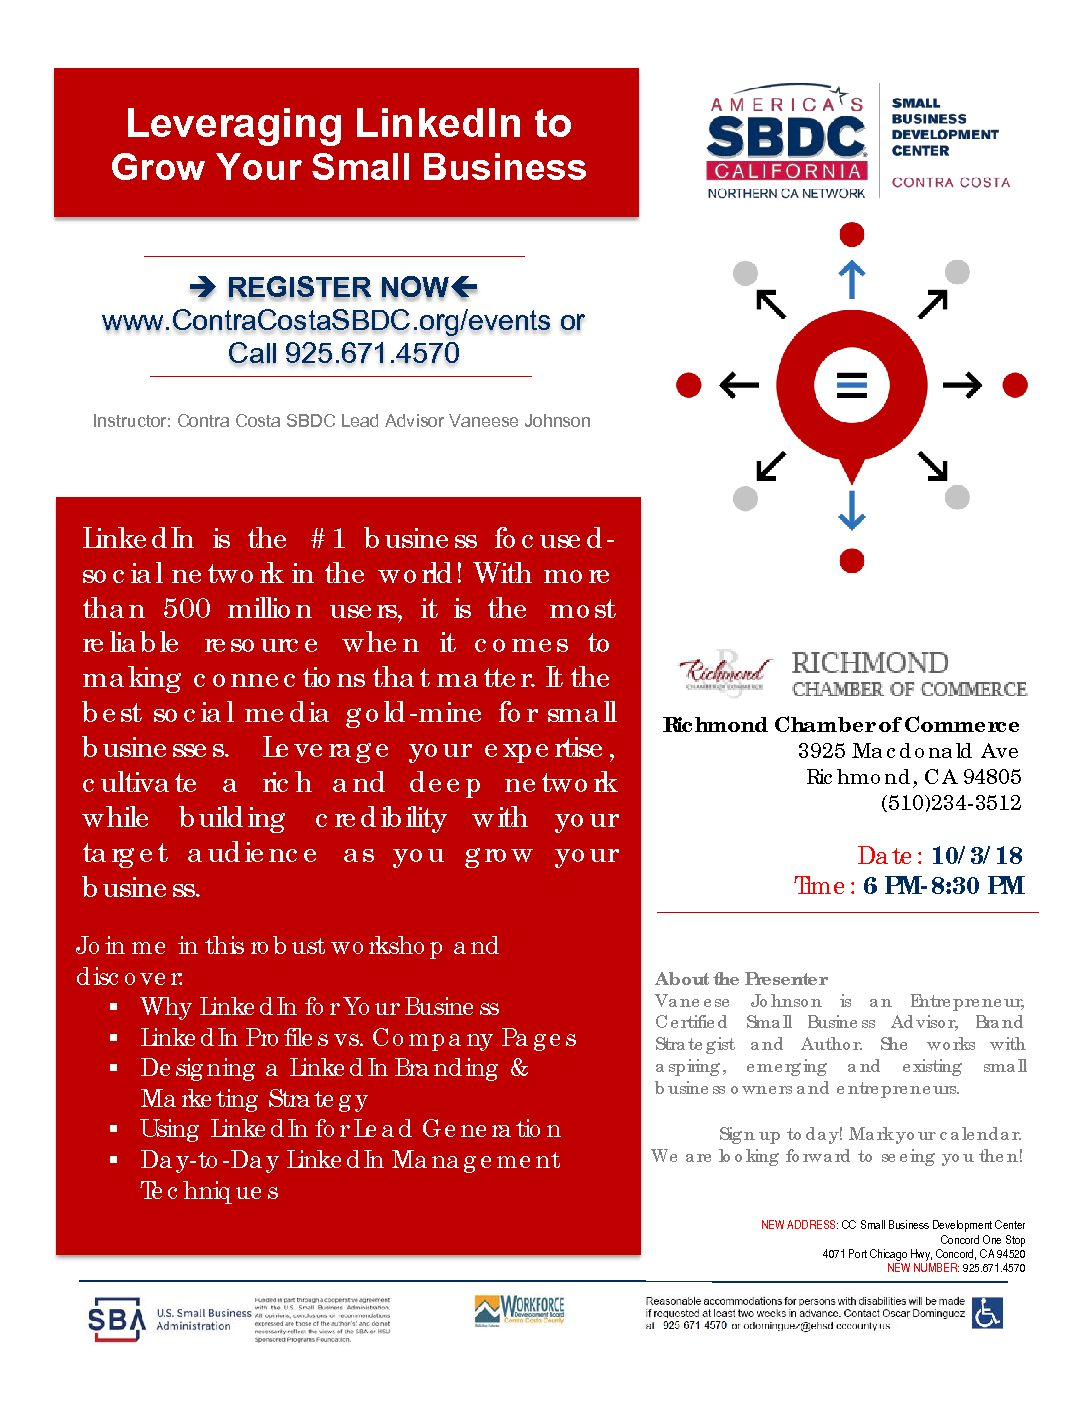 sbdc leveraging linkedin to grow your small business richmond